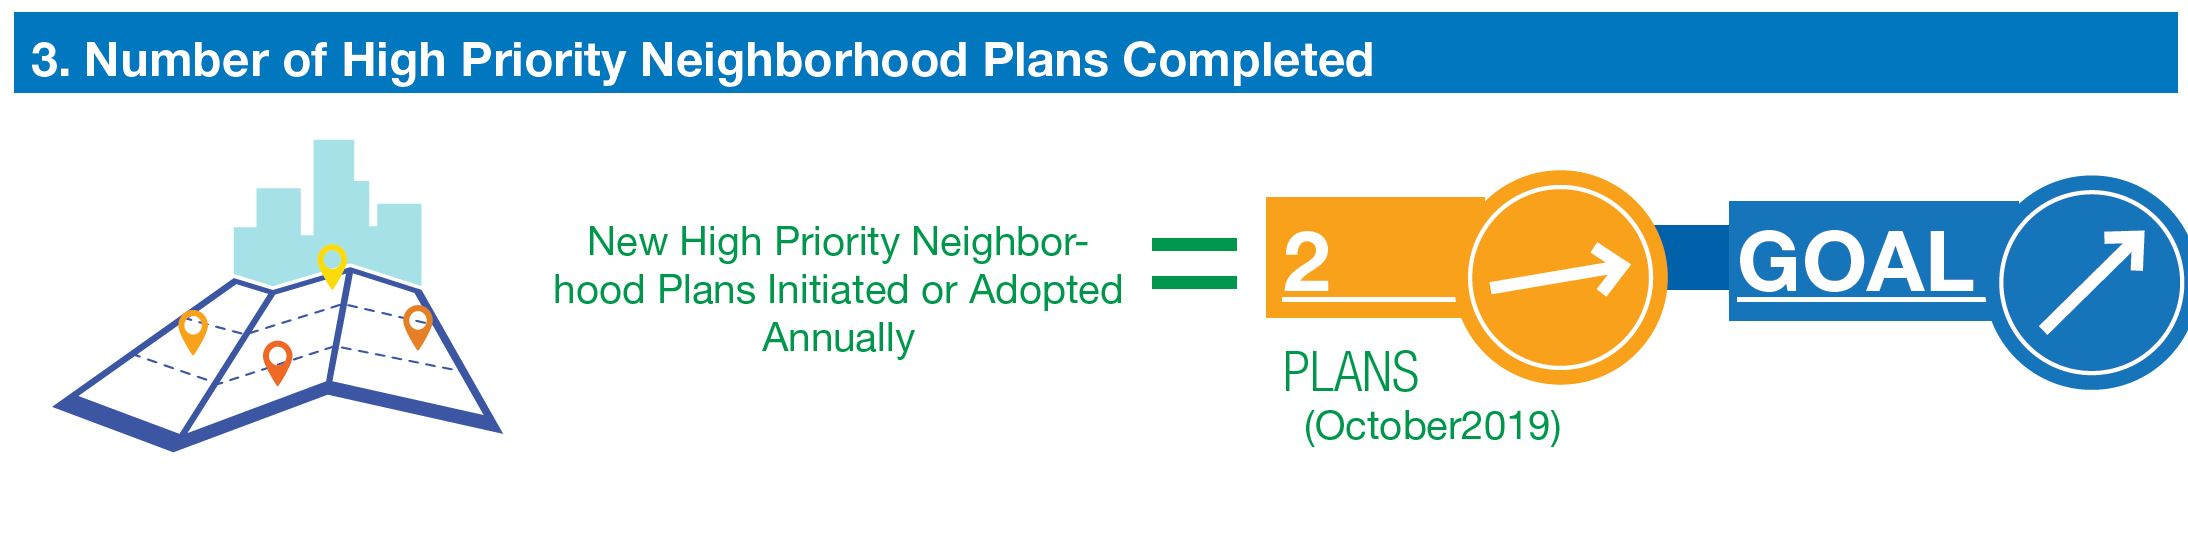 chart shows number of high priority neighborhood plans initiated or adopted annual. Two in 2019